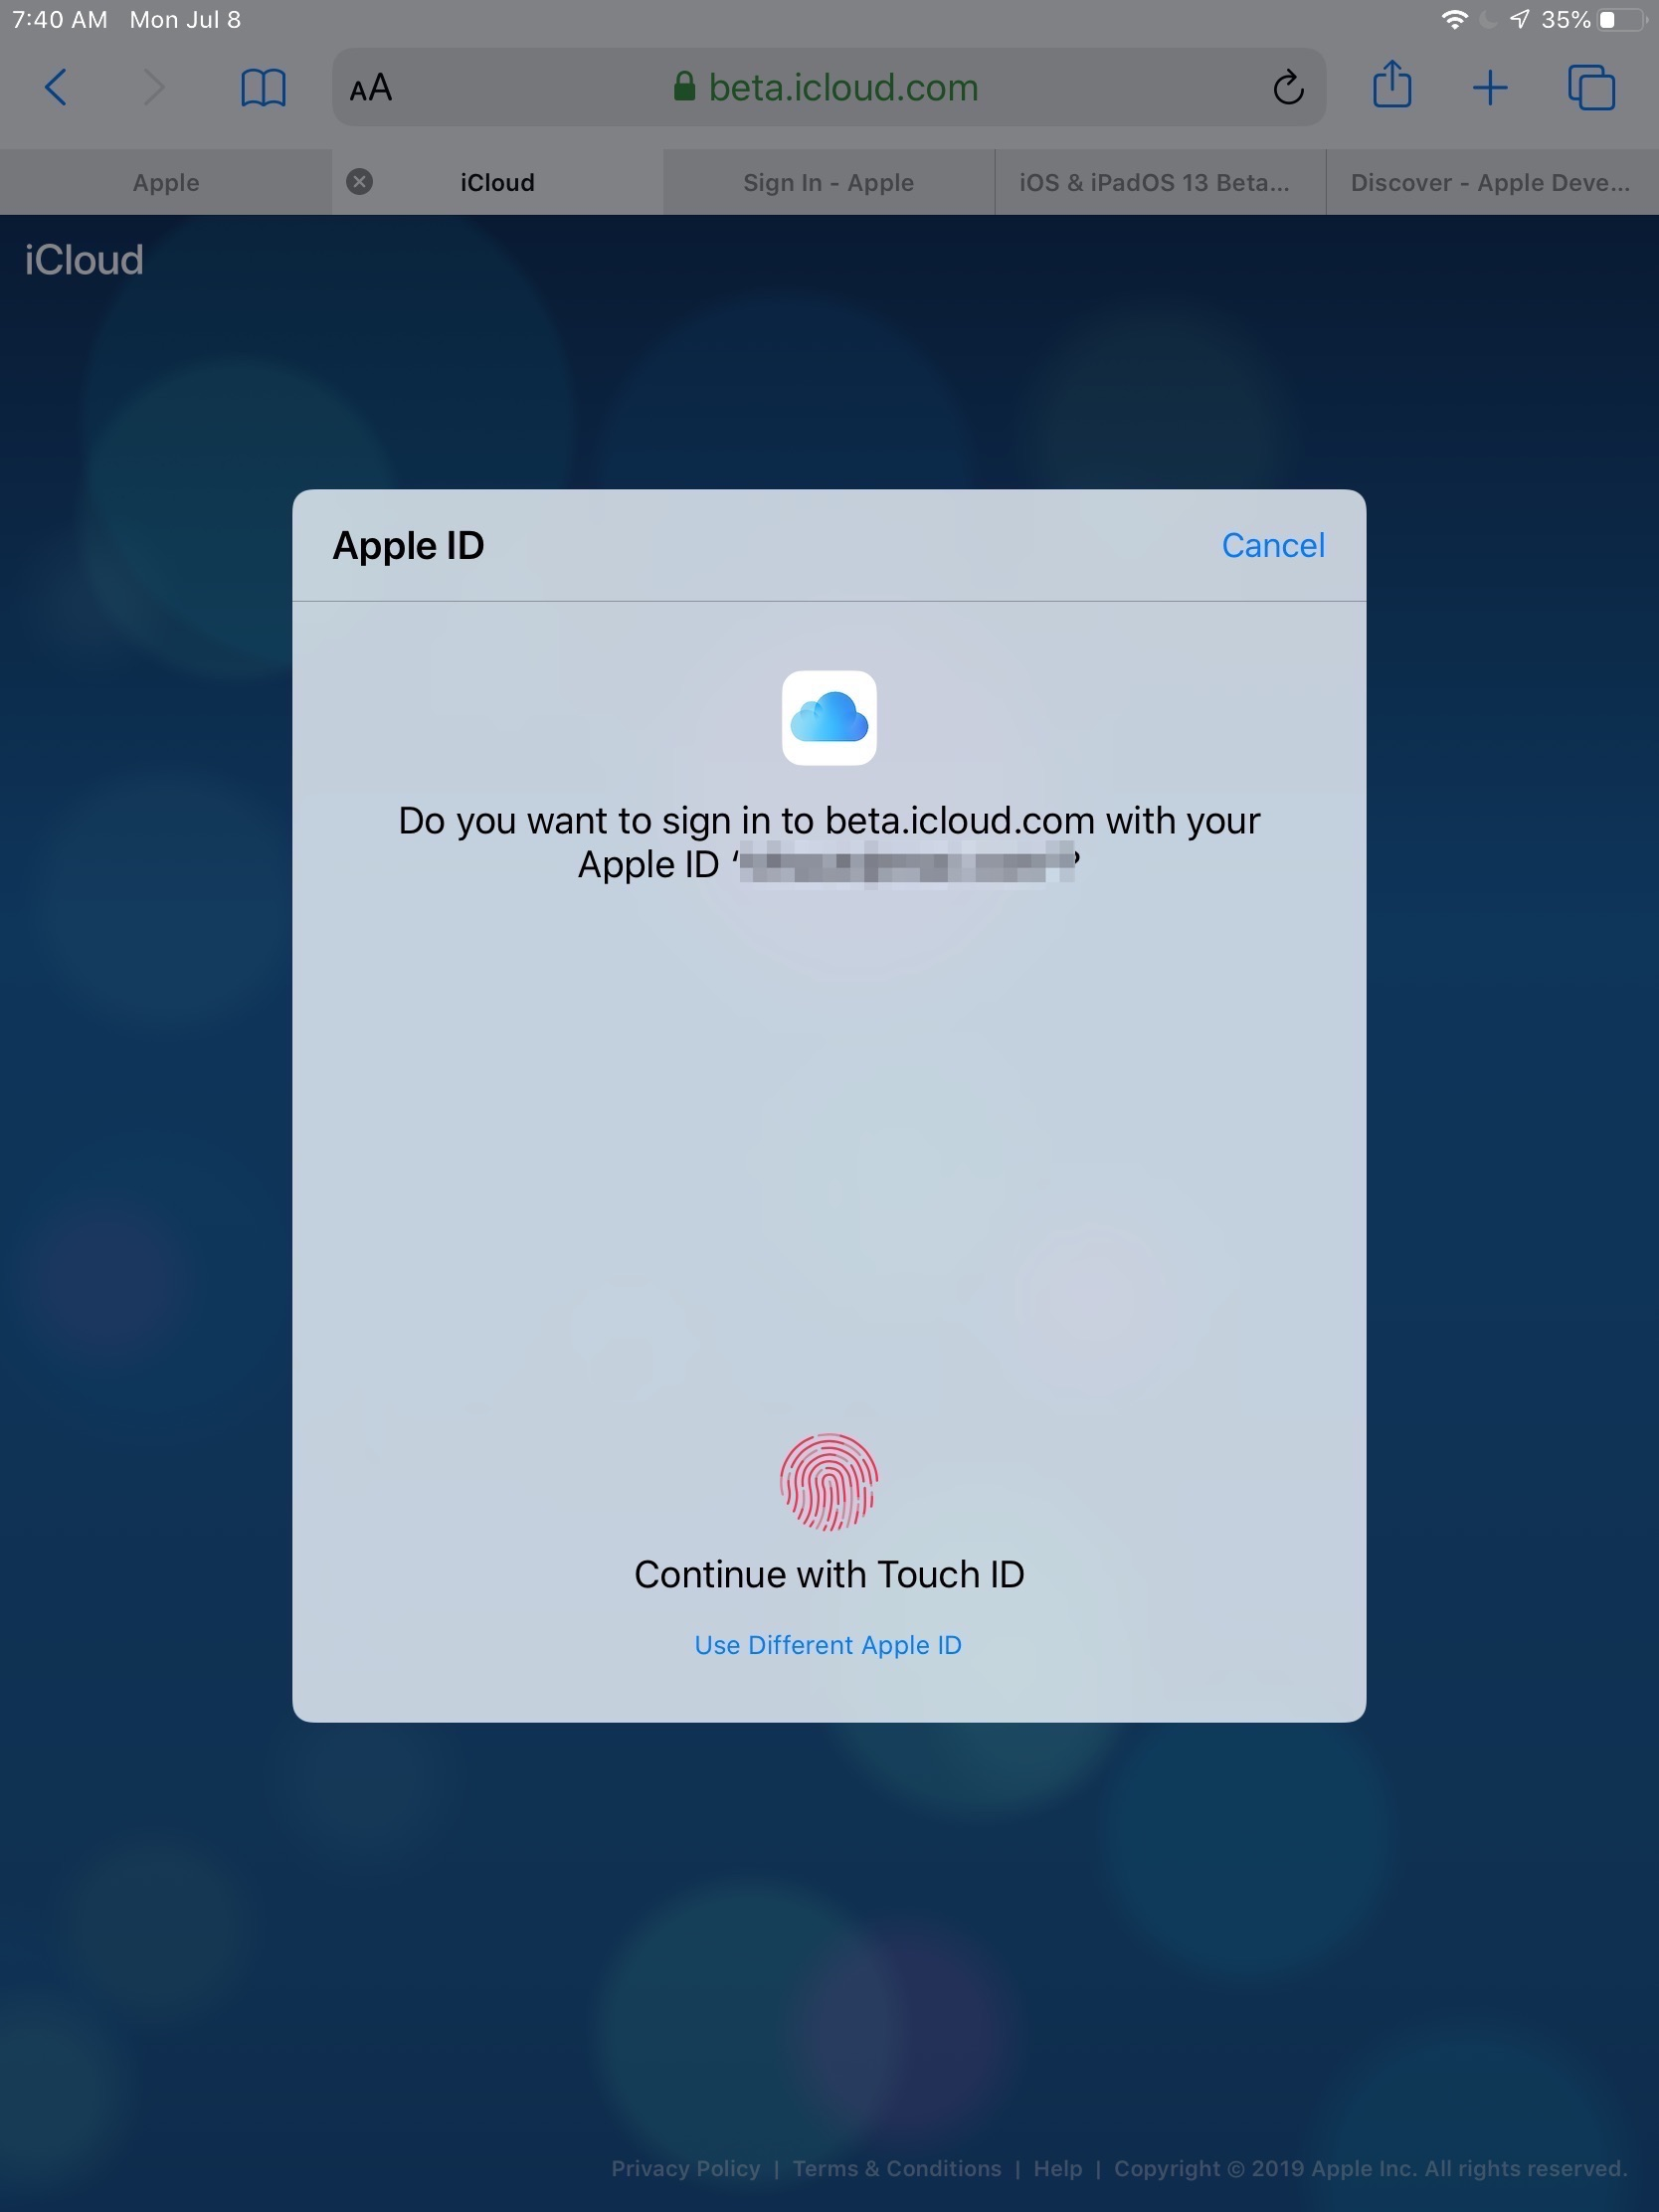 Apple Tests Face ID and Touch ID iCloud Website Sign-in on iOS 13, iPadOS, and macOS Catalina Betas